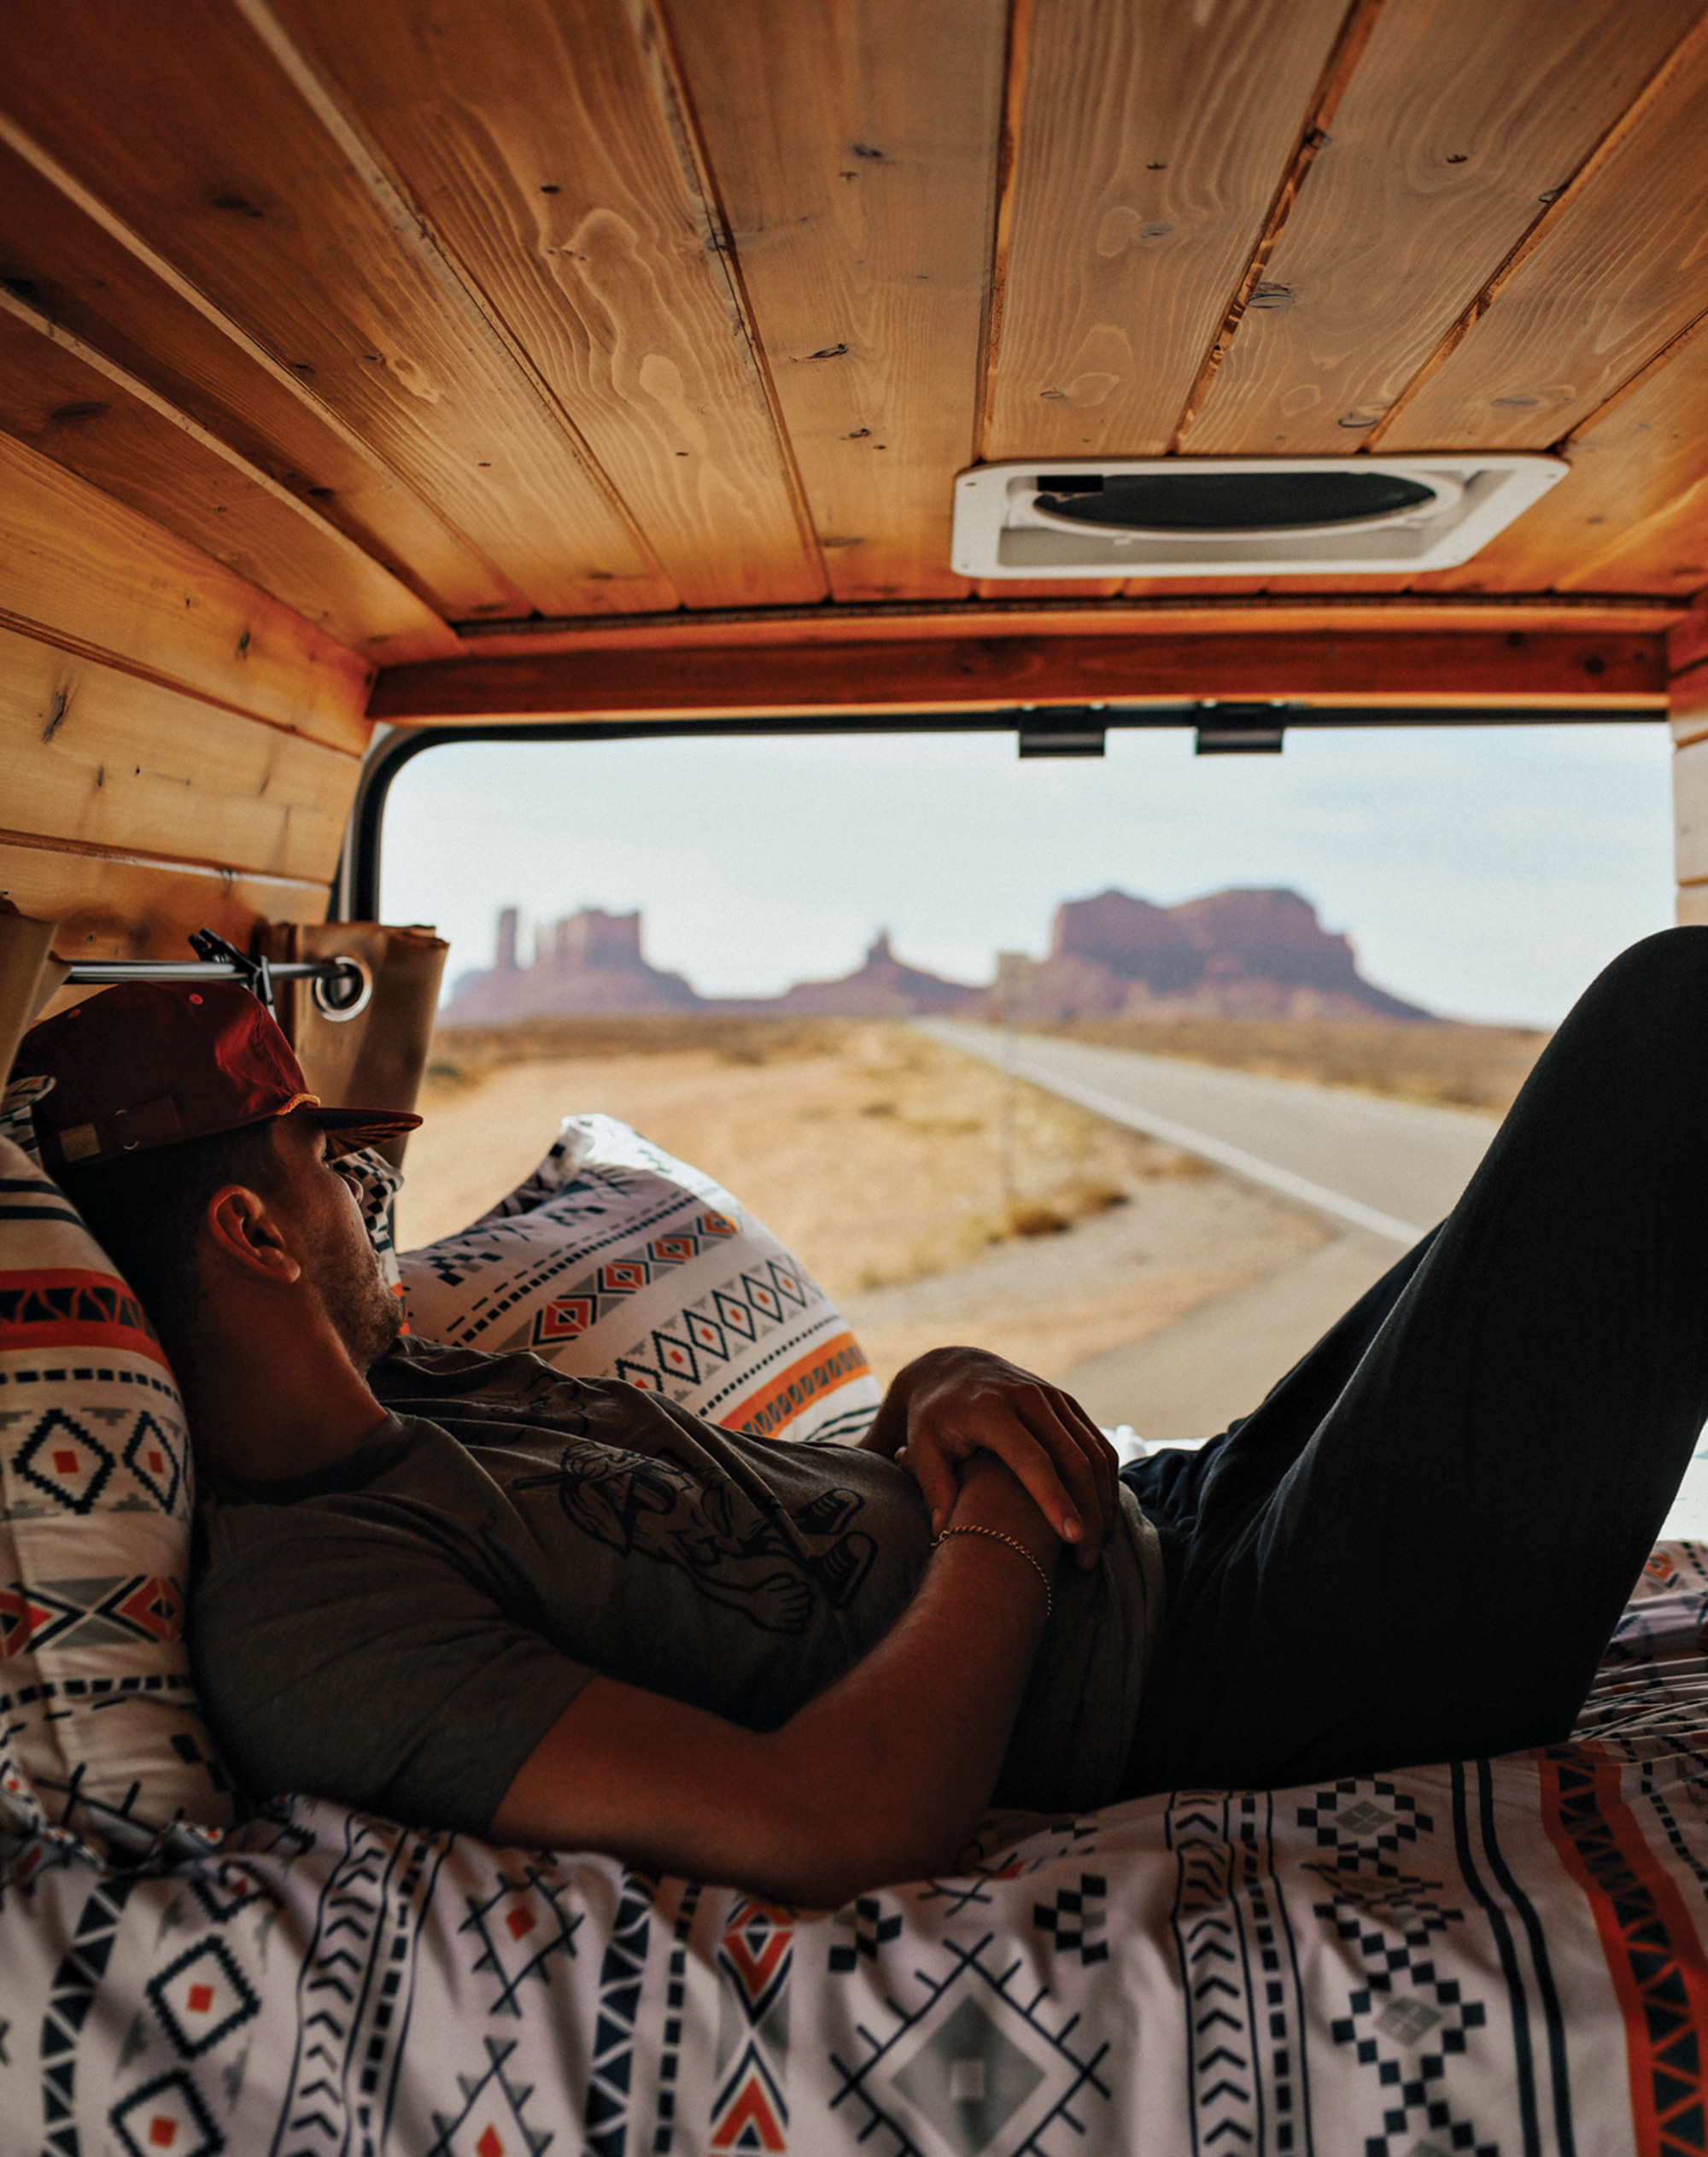 View from a Boho Camper Van; Photo by Shelby Pine/Courtesy Boho Camper Van